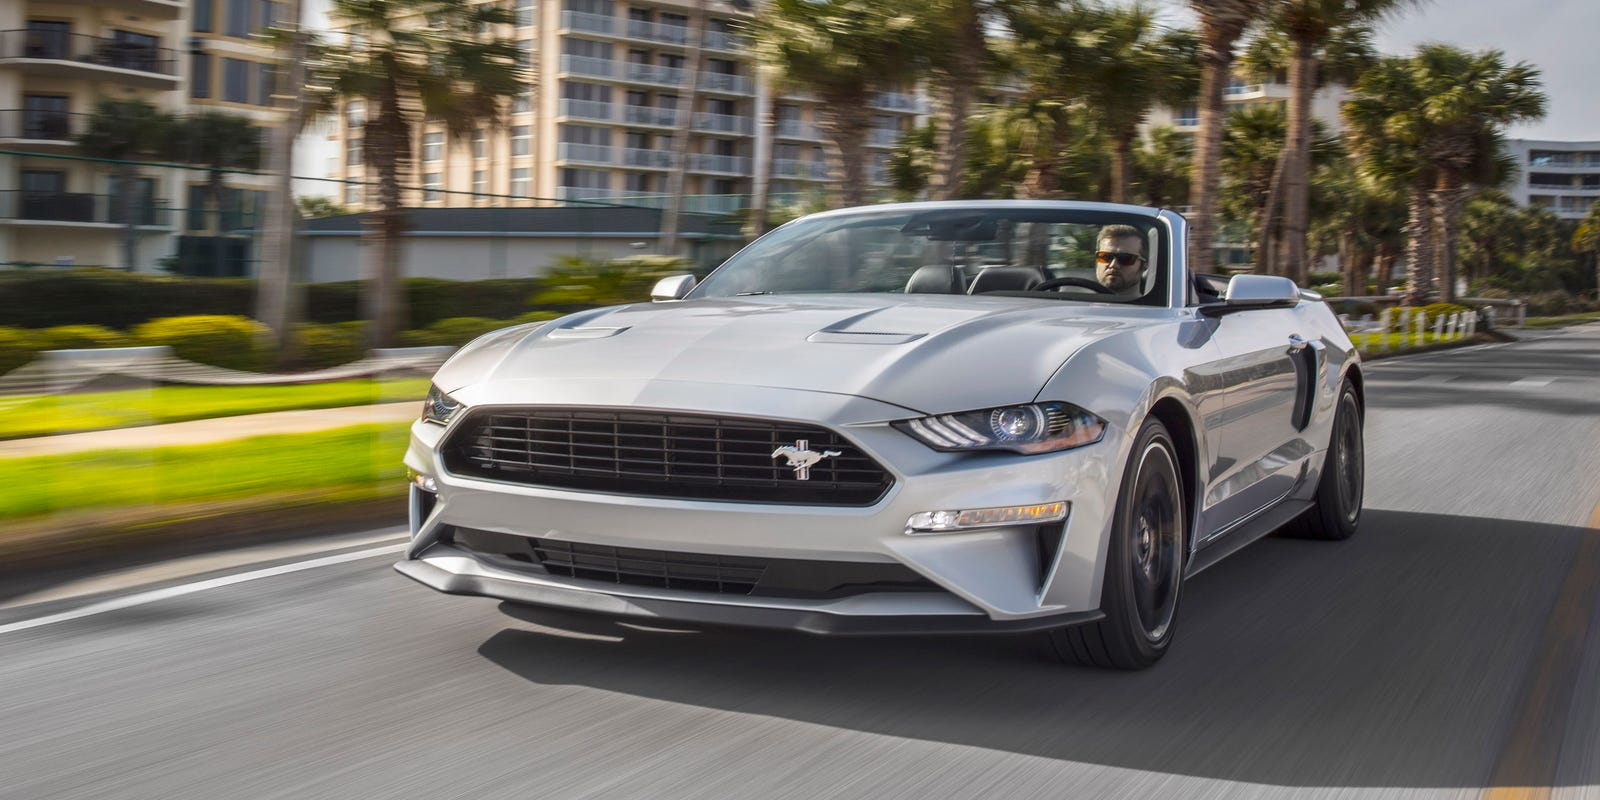 Mustang Gt California Special >> Mustang Gt California Adds Muscle To Lineup